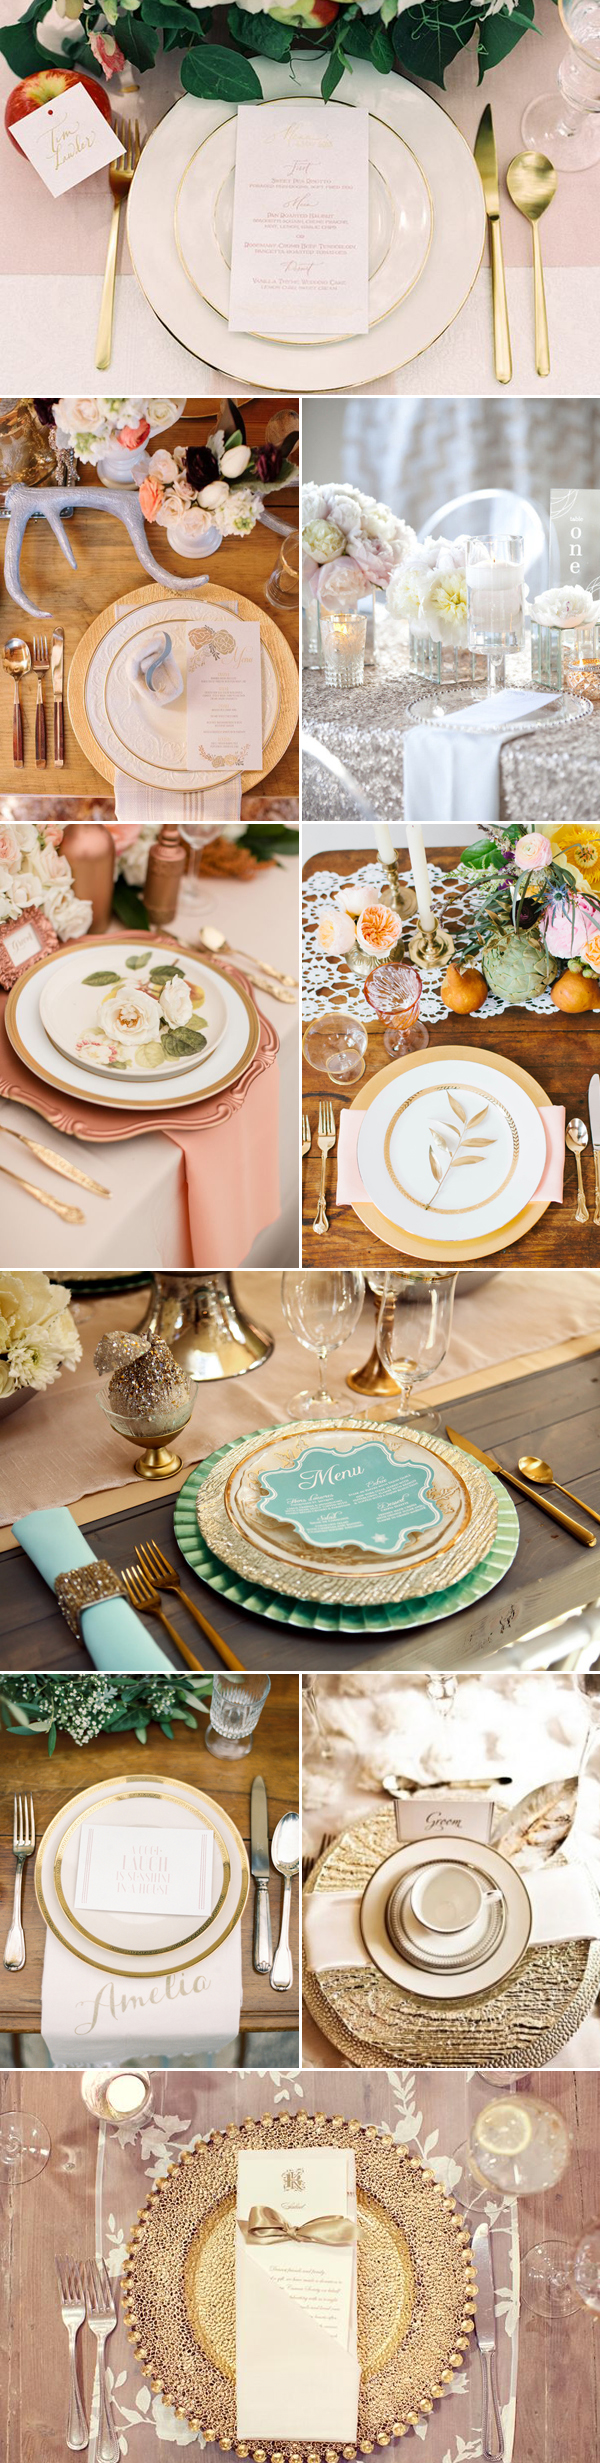 winter-placesetting01-gold-5419-14170208